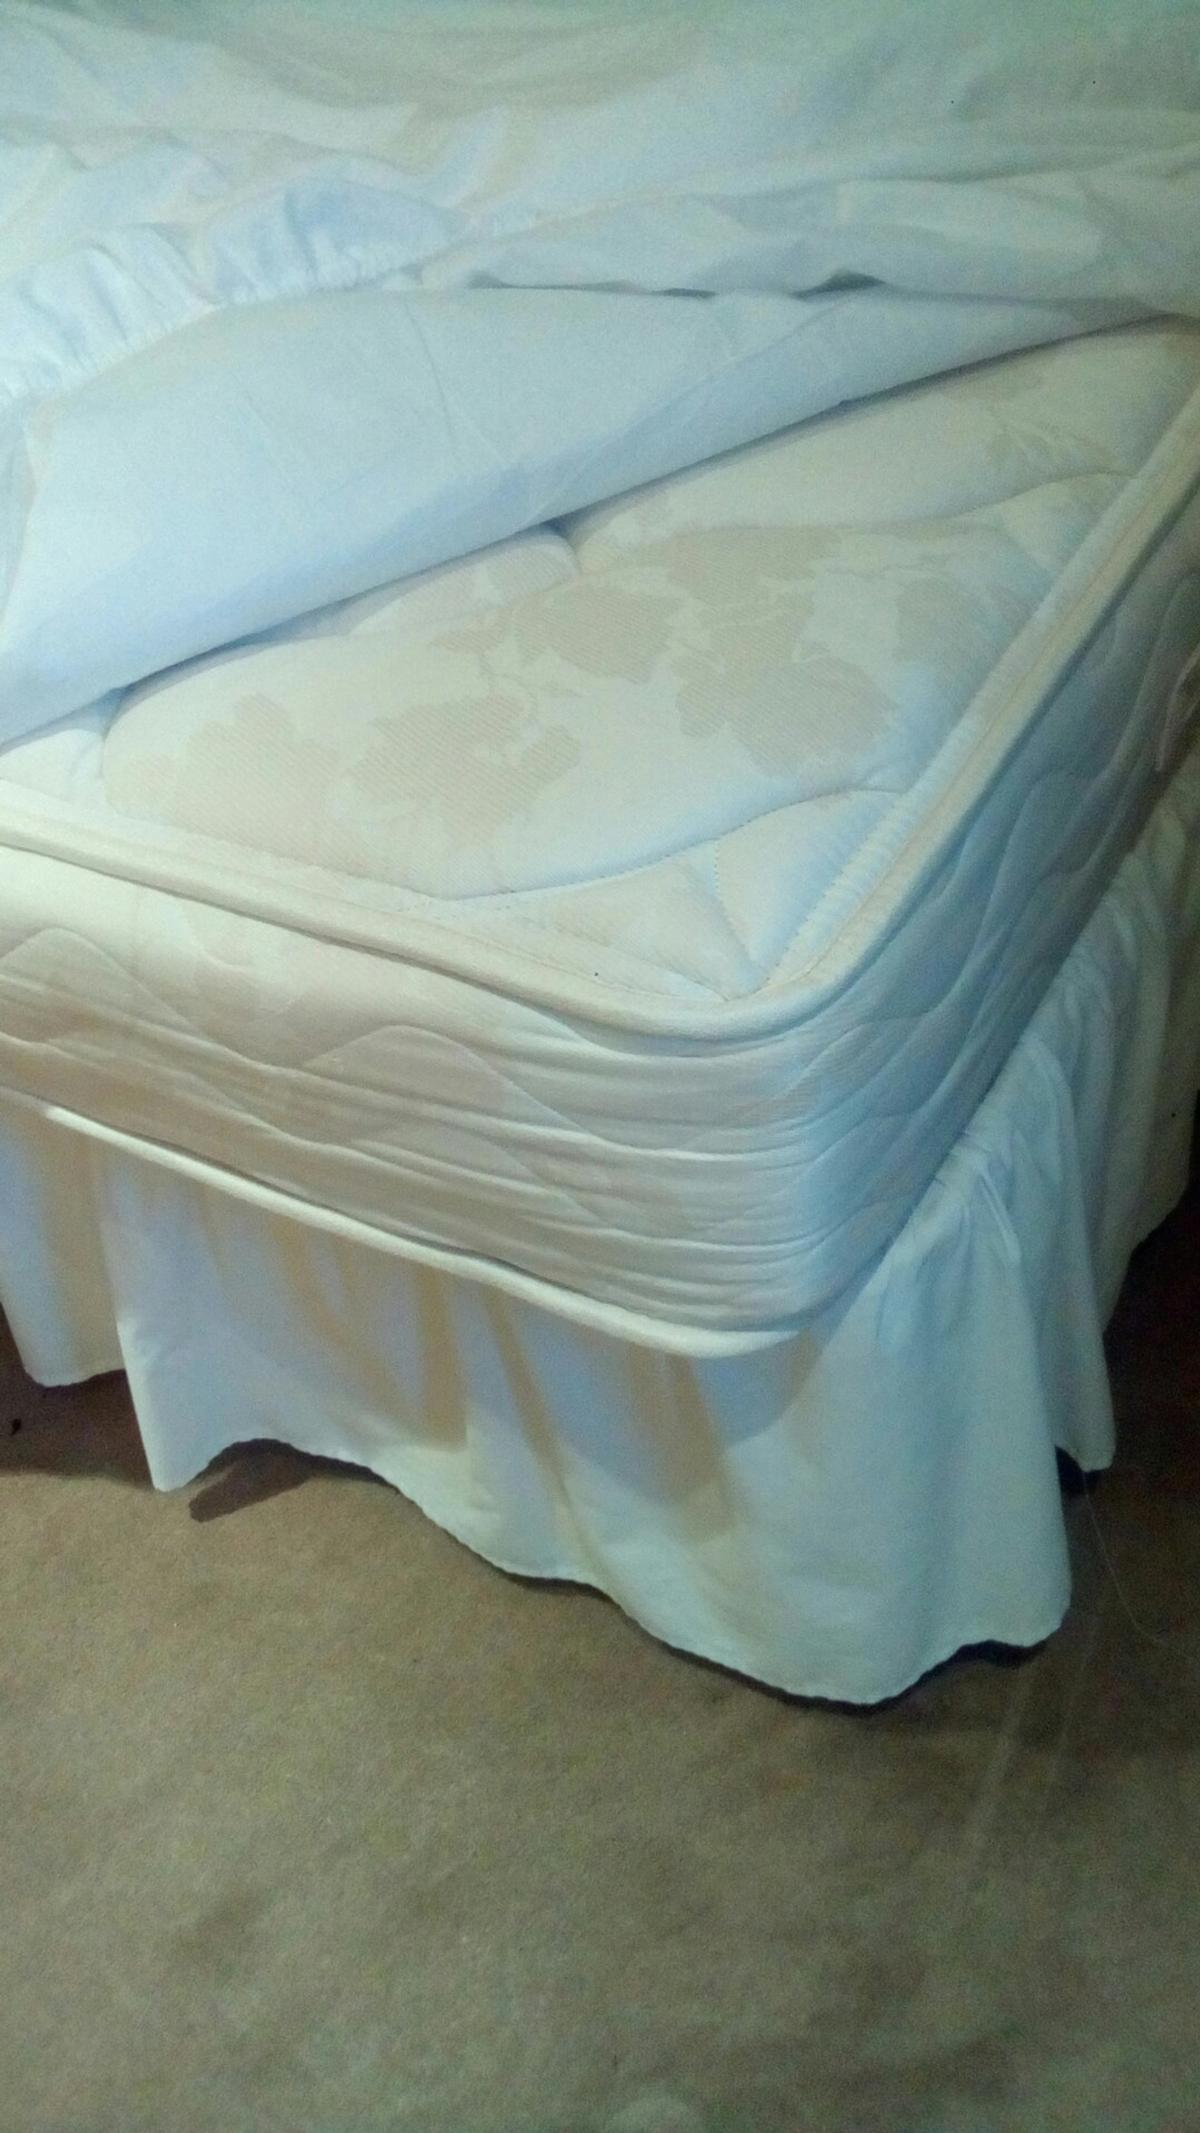 Single divan in good condition. Headboard included